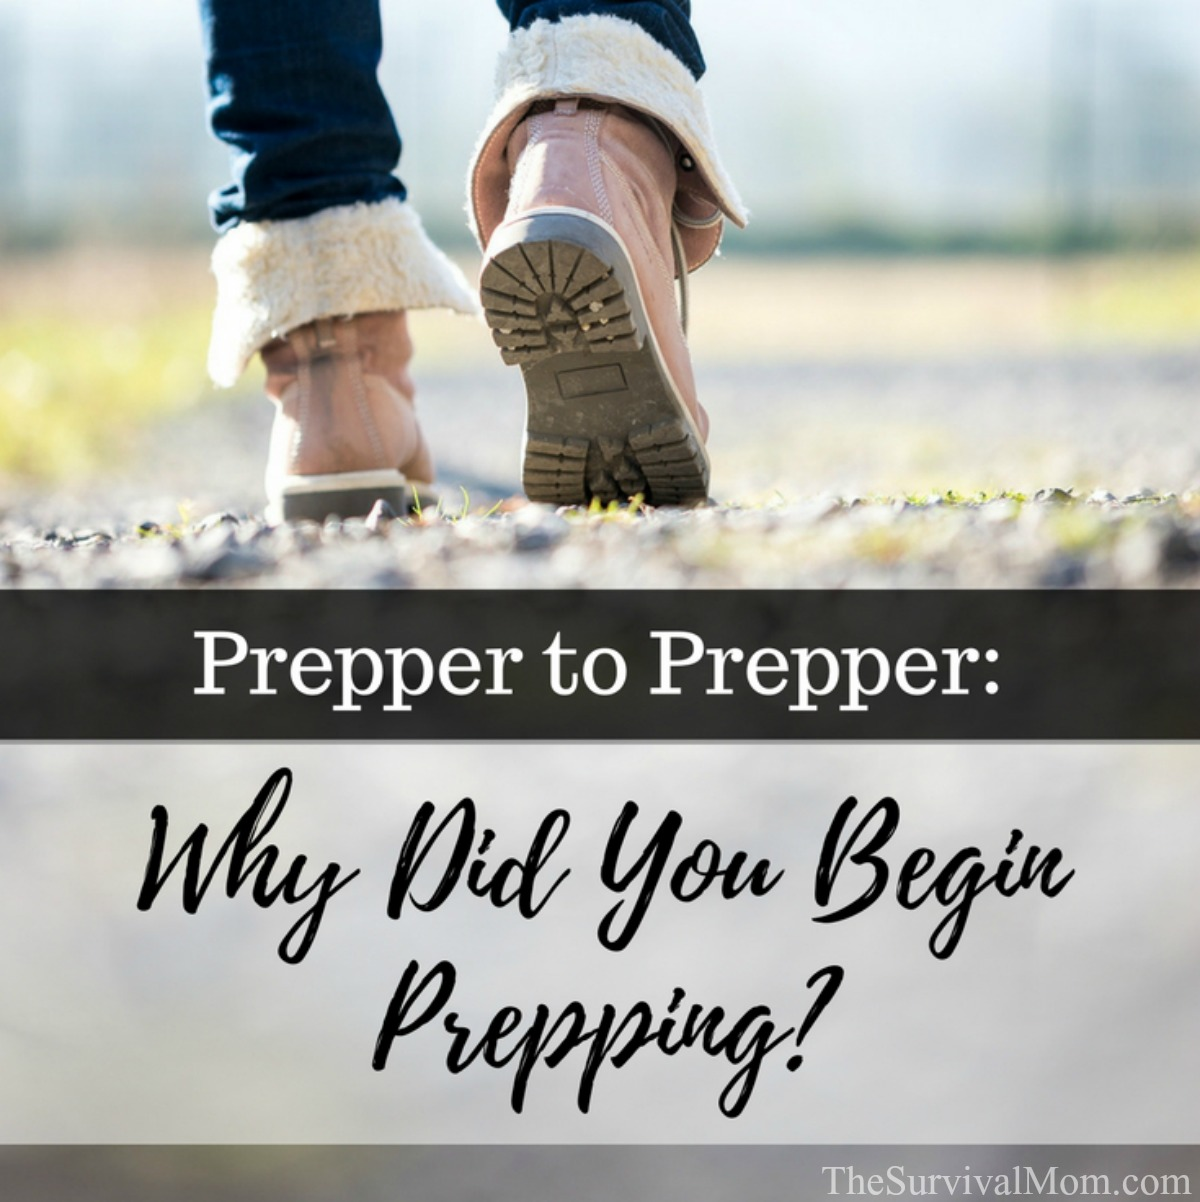 Prepper to Prepper Why Did You Begin Prepping via The Survival Mom